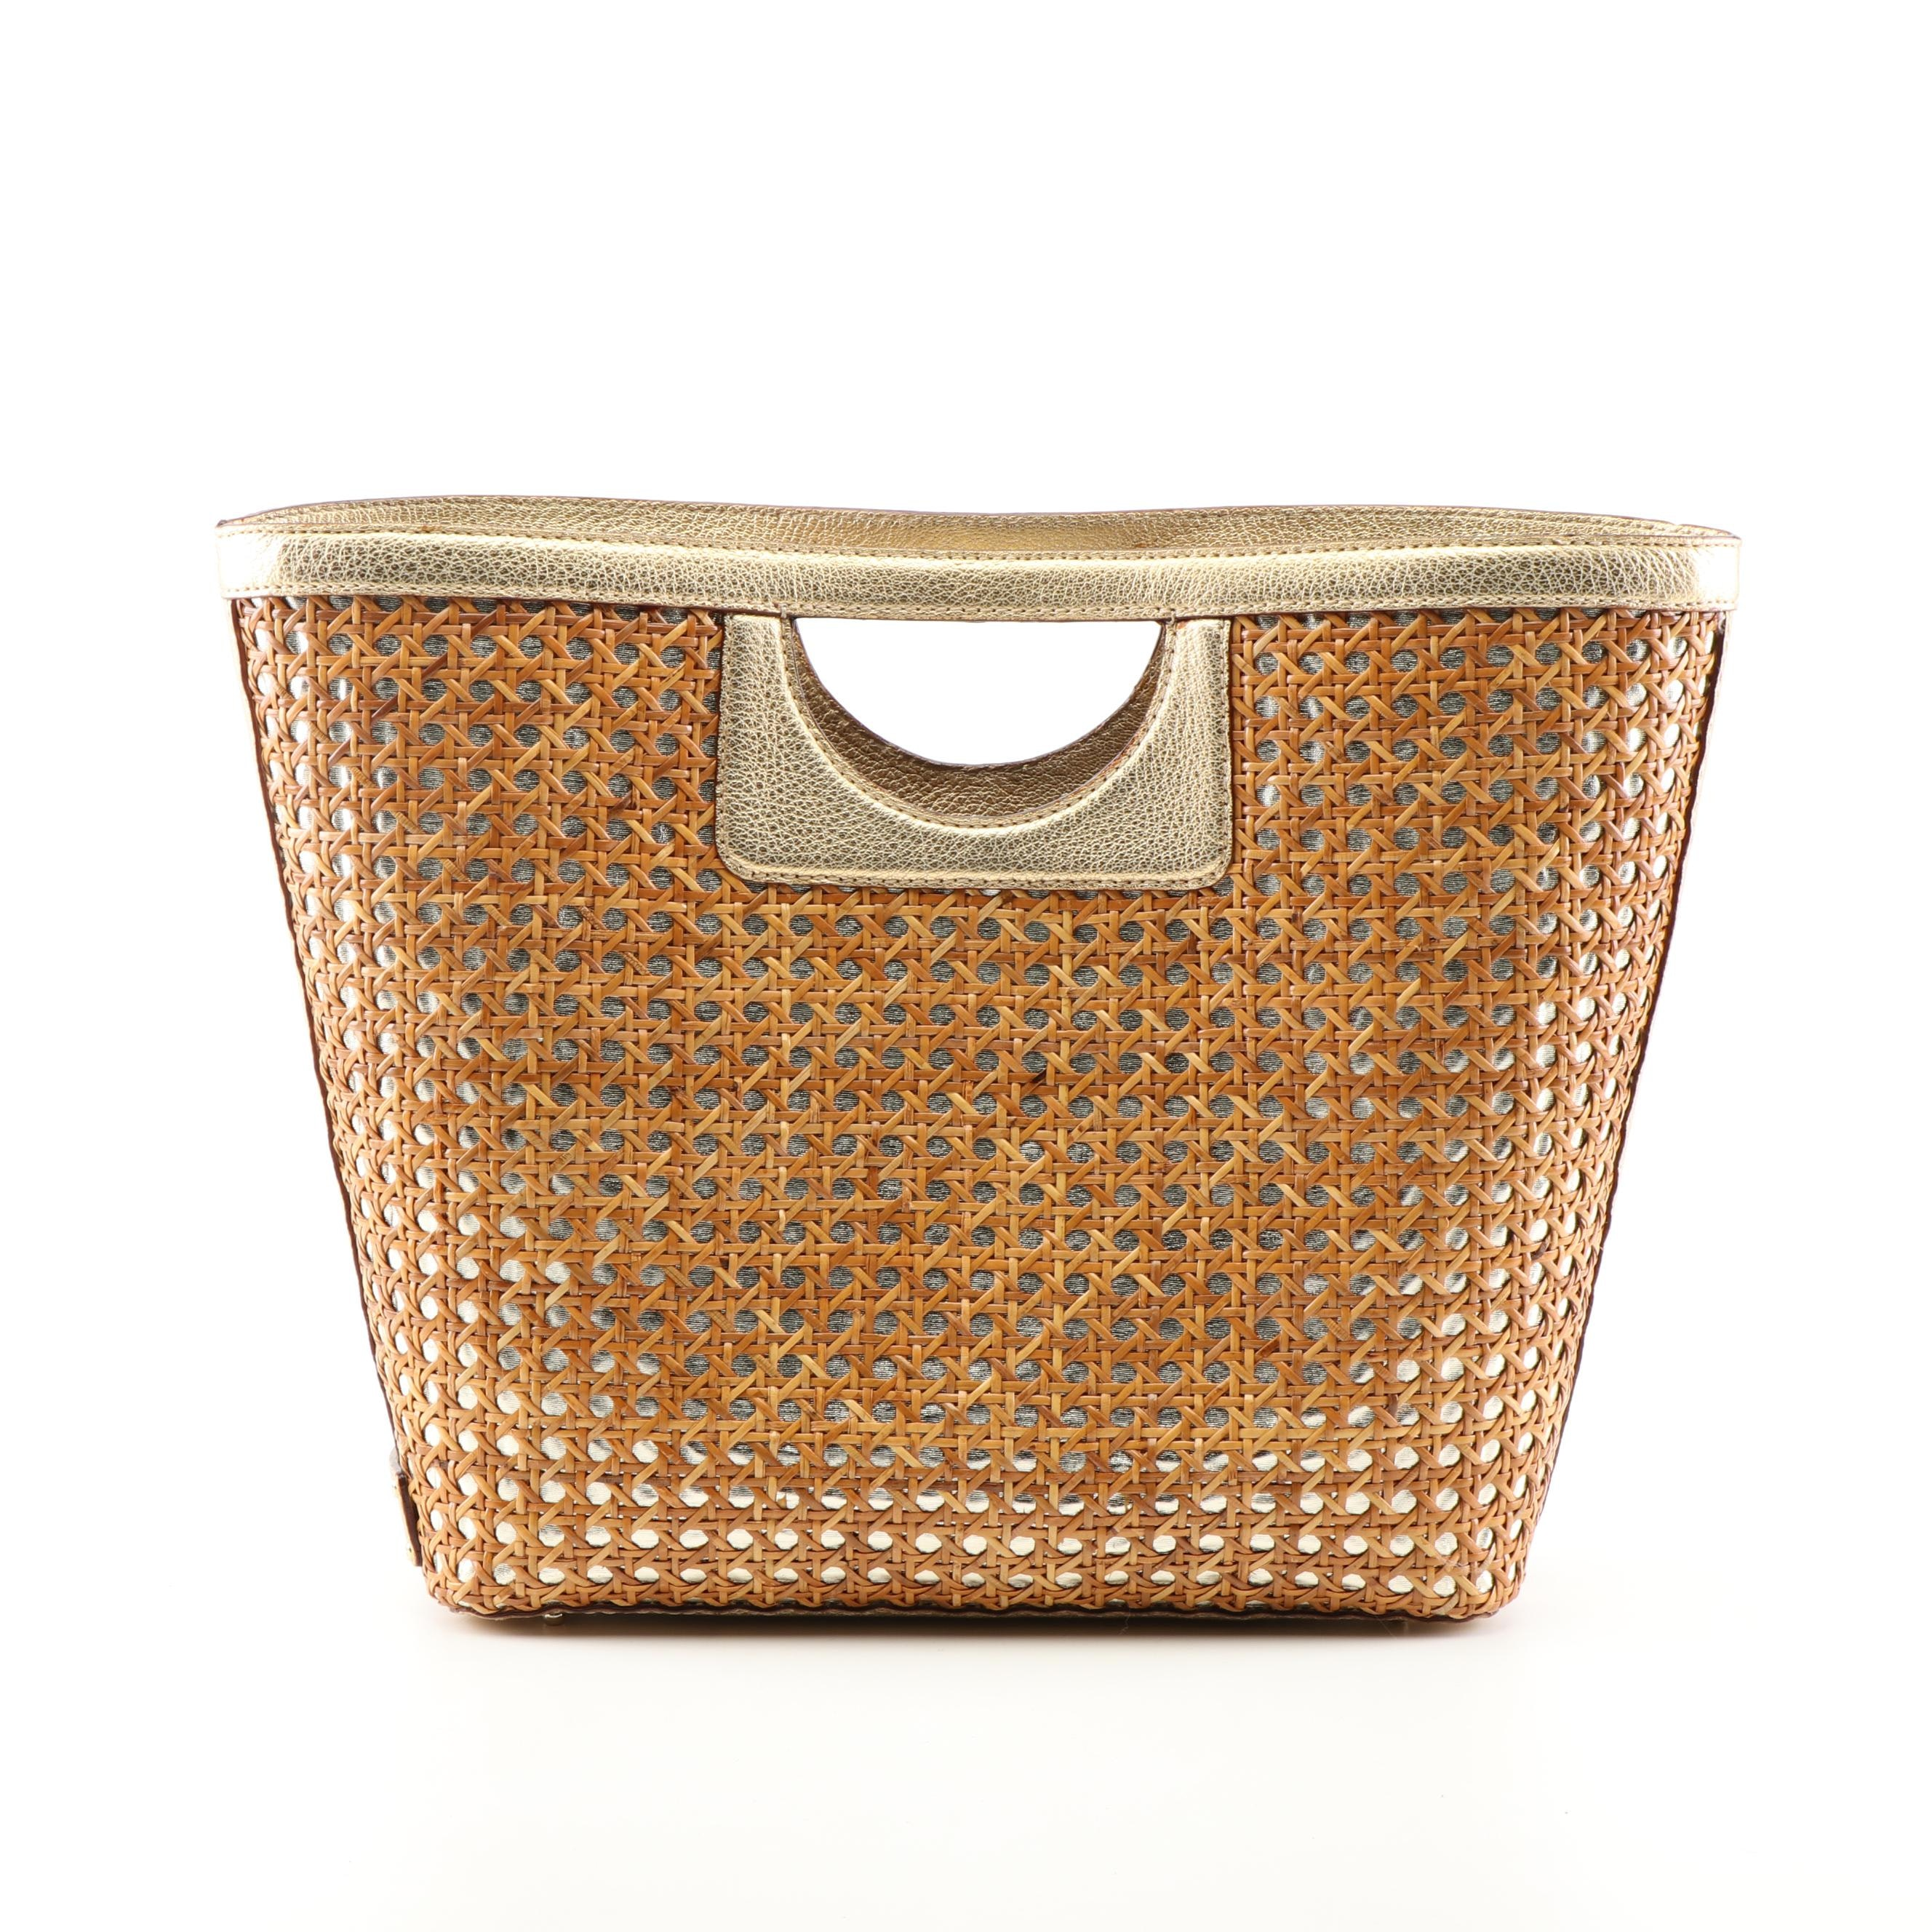 Kate Spade New York Cane and Metallic Leather Tote Bag